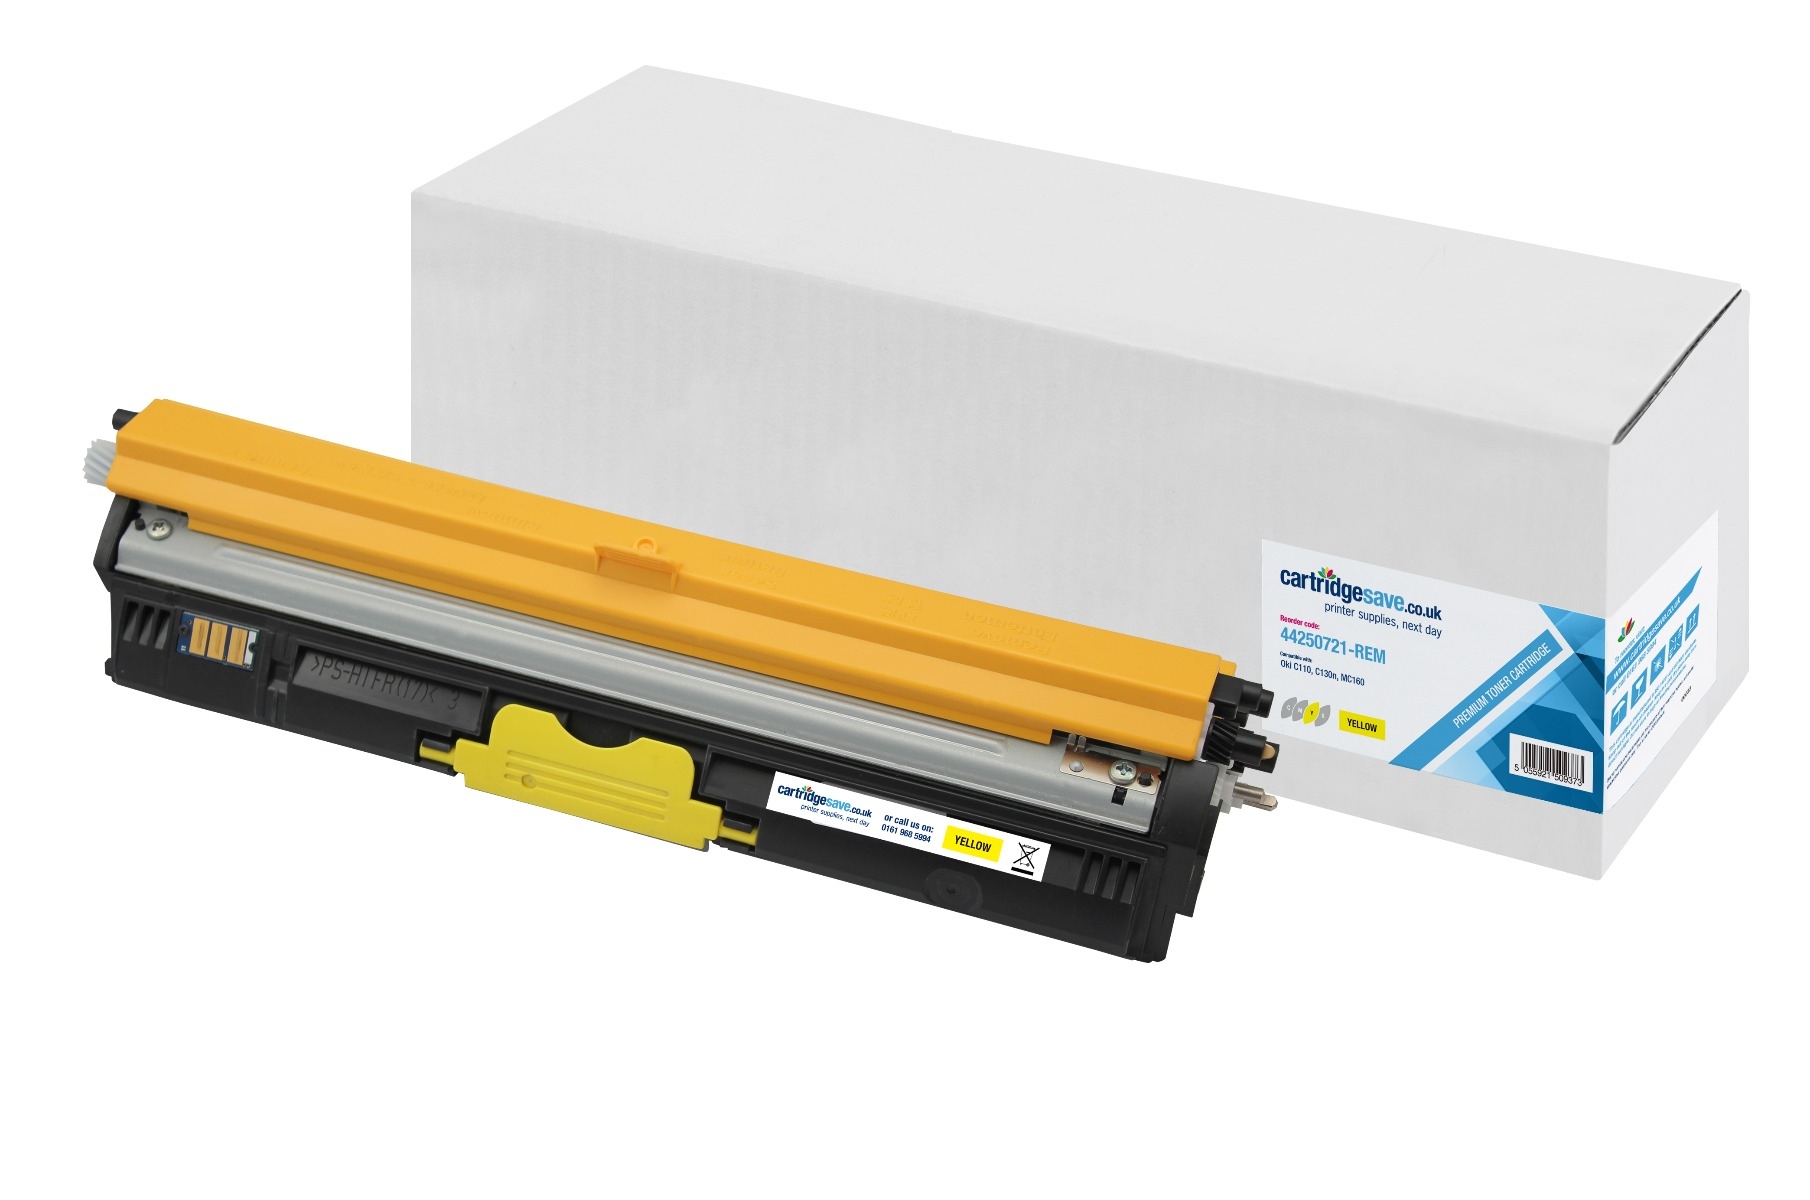 Compatible High Capacity Yellow Oki 44250721 Laser Toner (Replaces Oki 44250721 Laser Printer Cartridge)